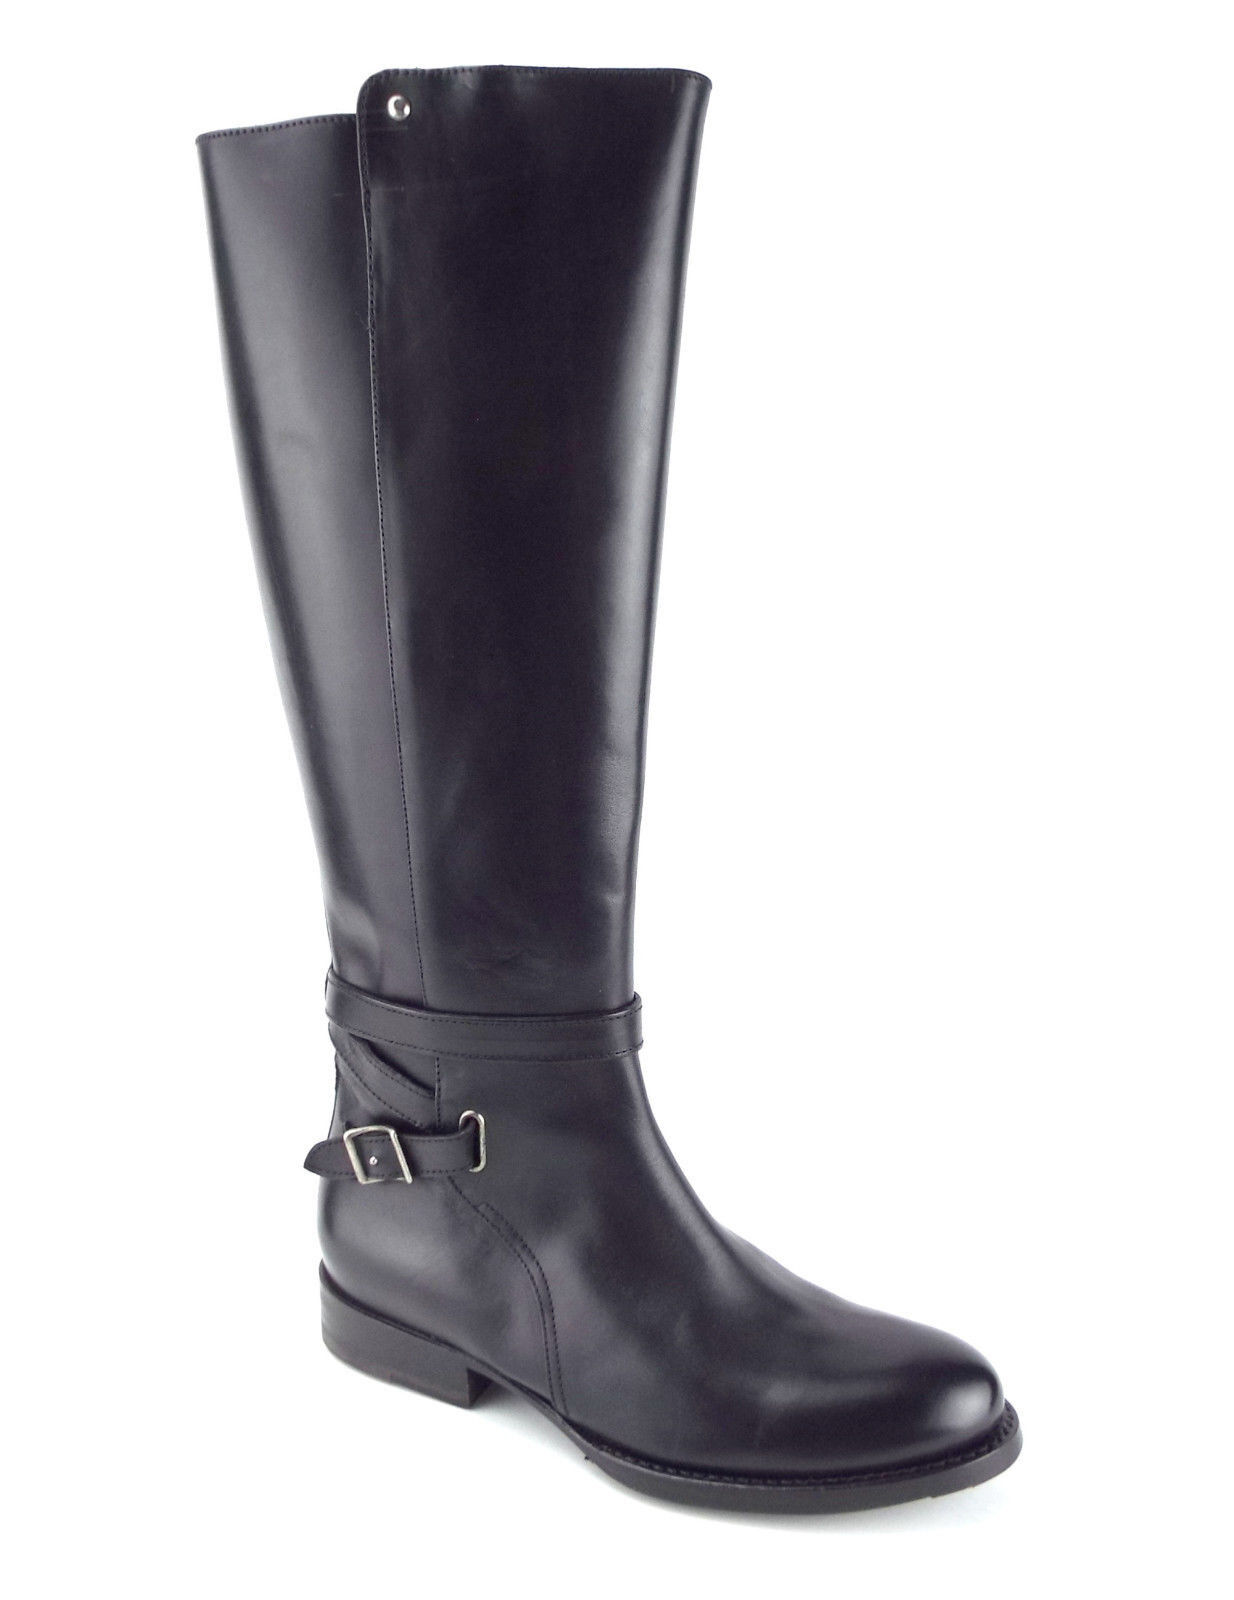 New FRYE Size 7 JORDAN BUCKLE Black Leather Riding Style Boots